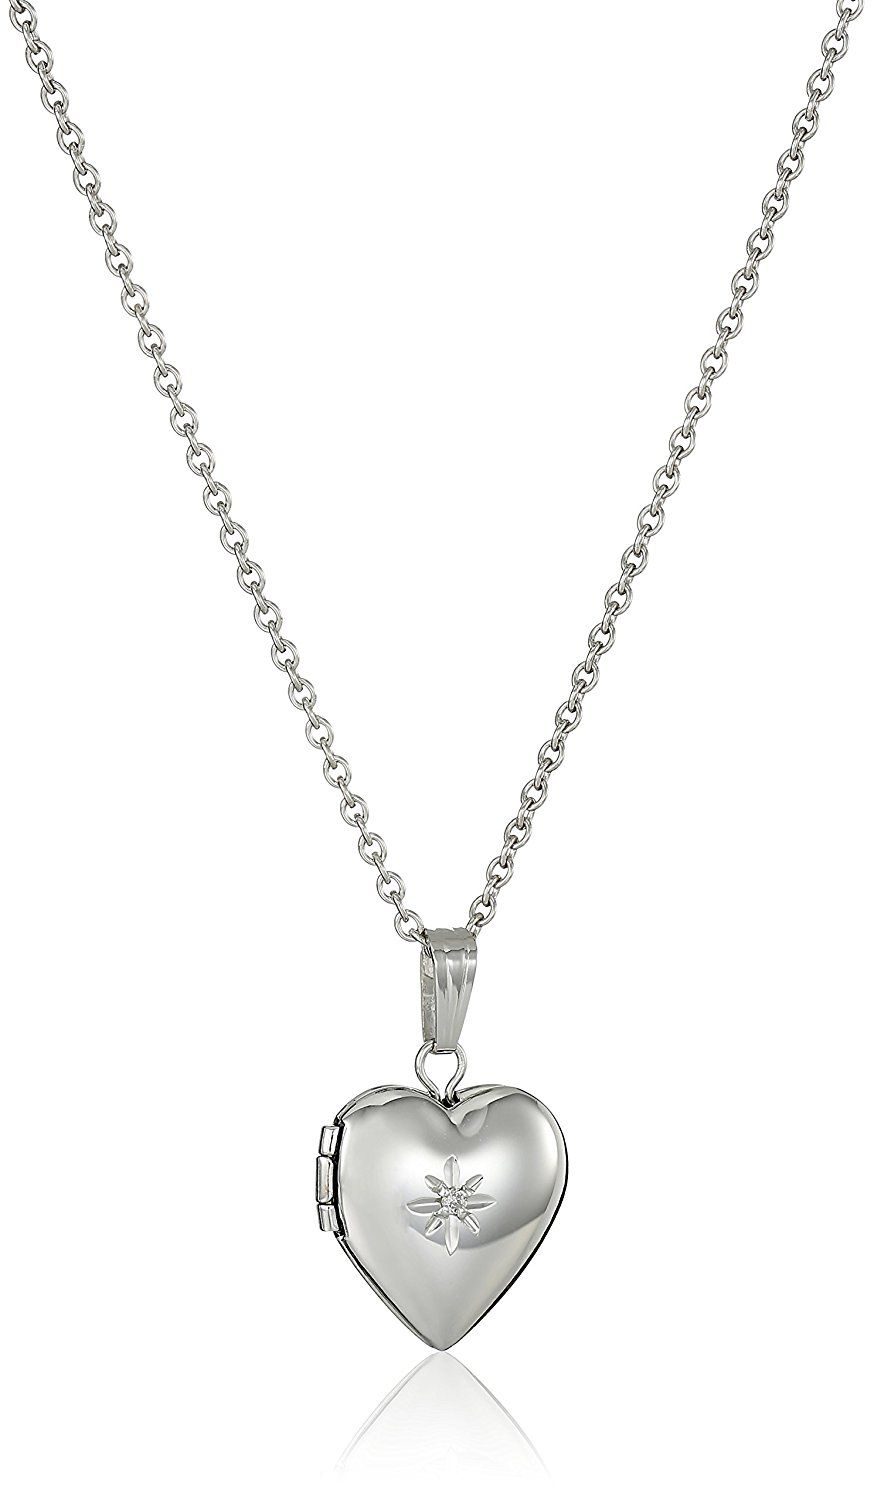 silver locket charms childrens heart direct sterling plain shaped lockets